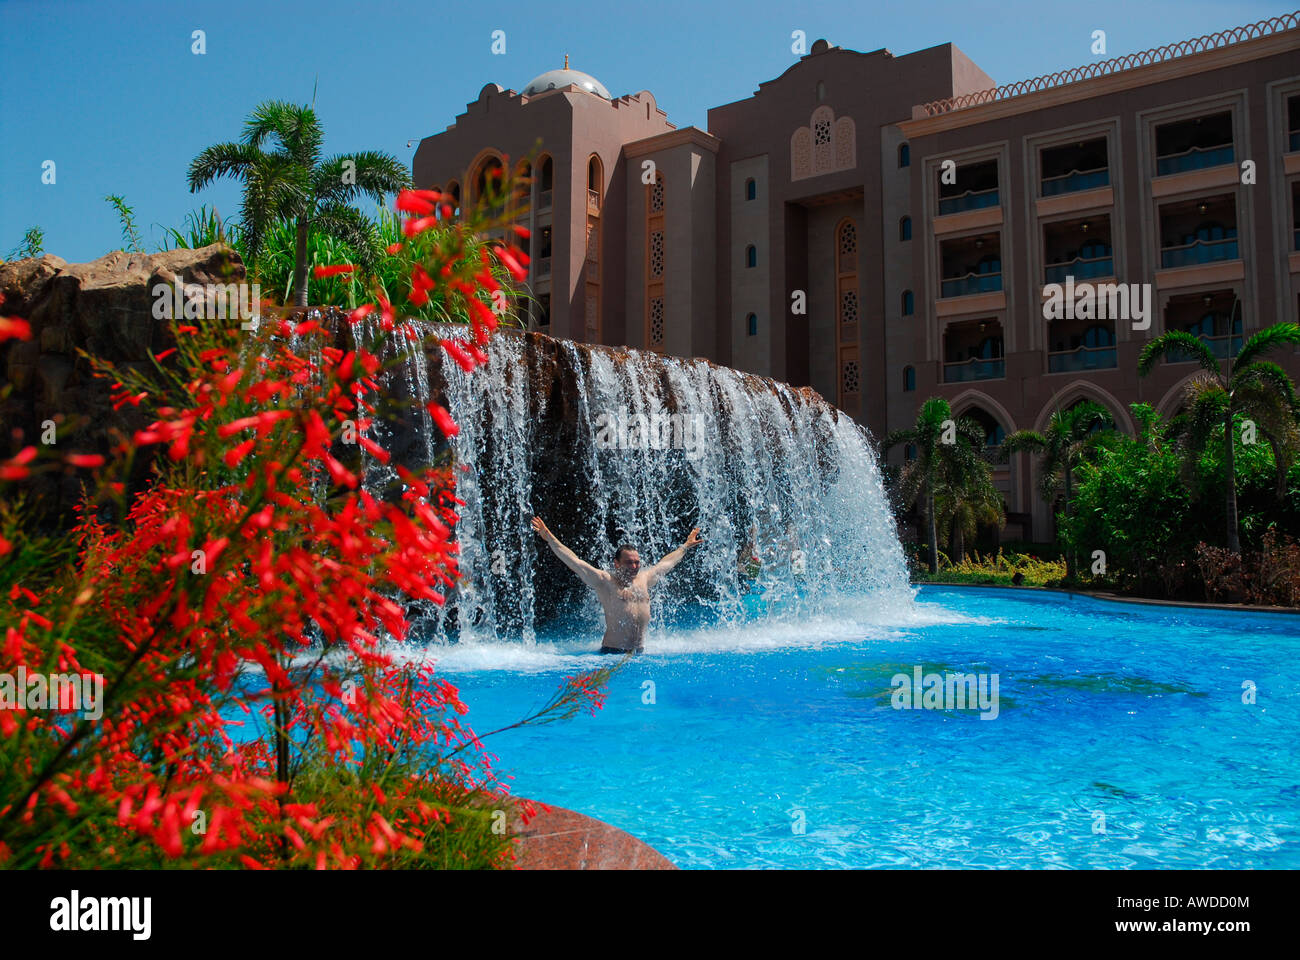 Swimming Pool Emirates Palace Hotel Abu Dhabi United Arab Stock Photo Royalty Free Image